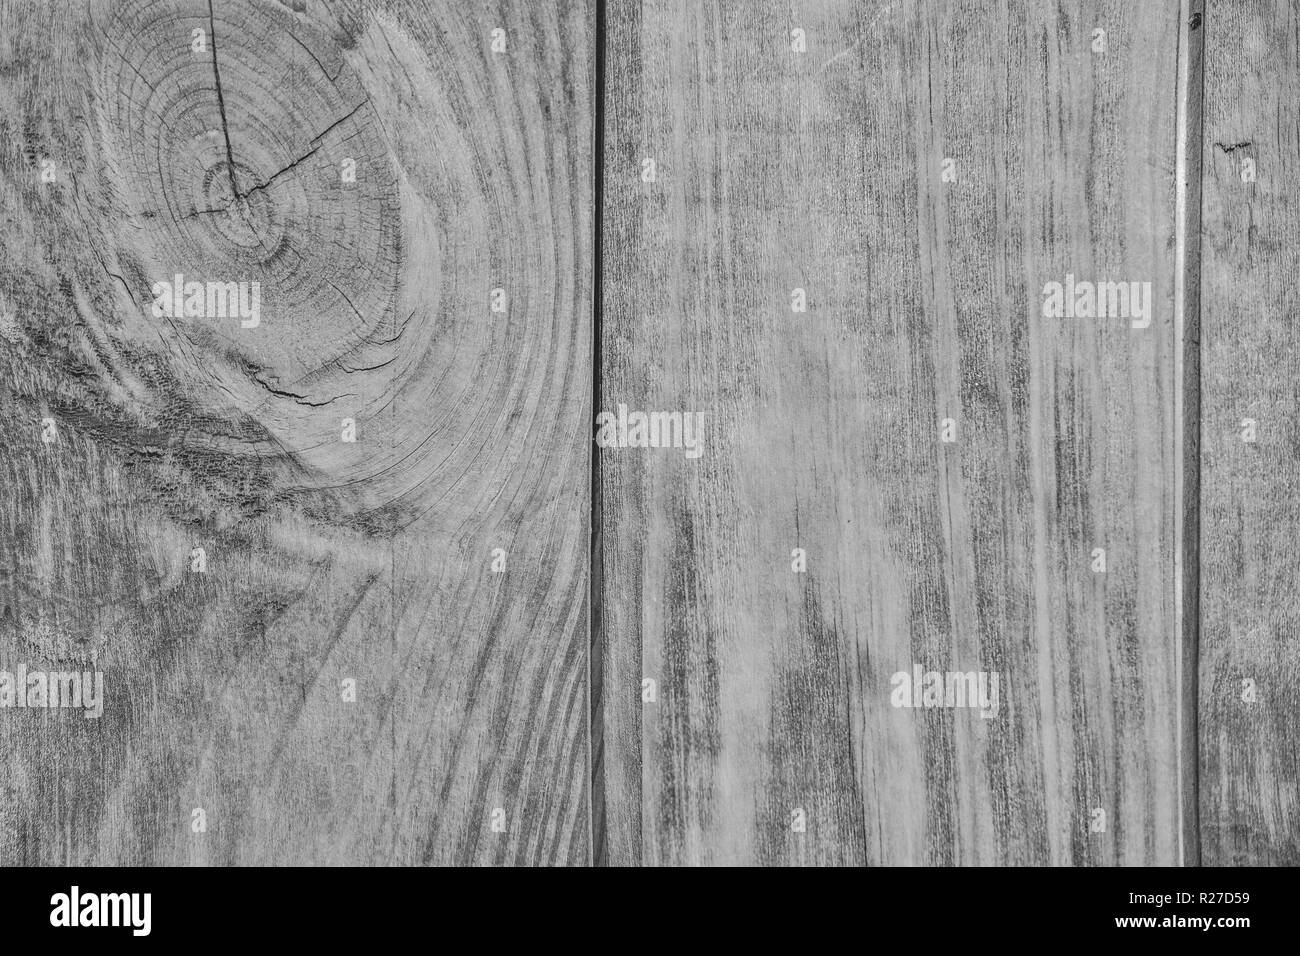 Vintage white wooden texture of planks with knot - natural pattern of coniferous timber. Grunge wood background close up for design in country style - Stock Image